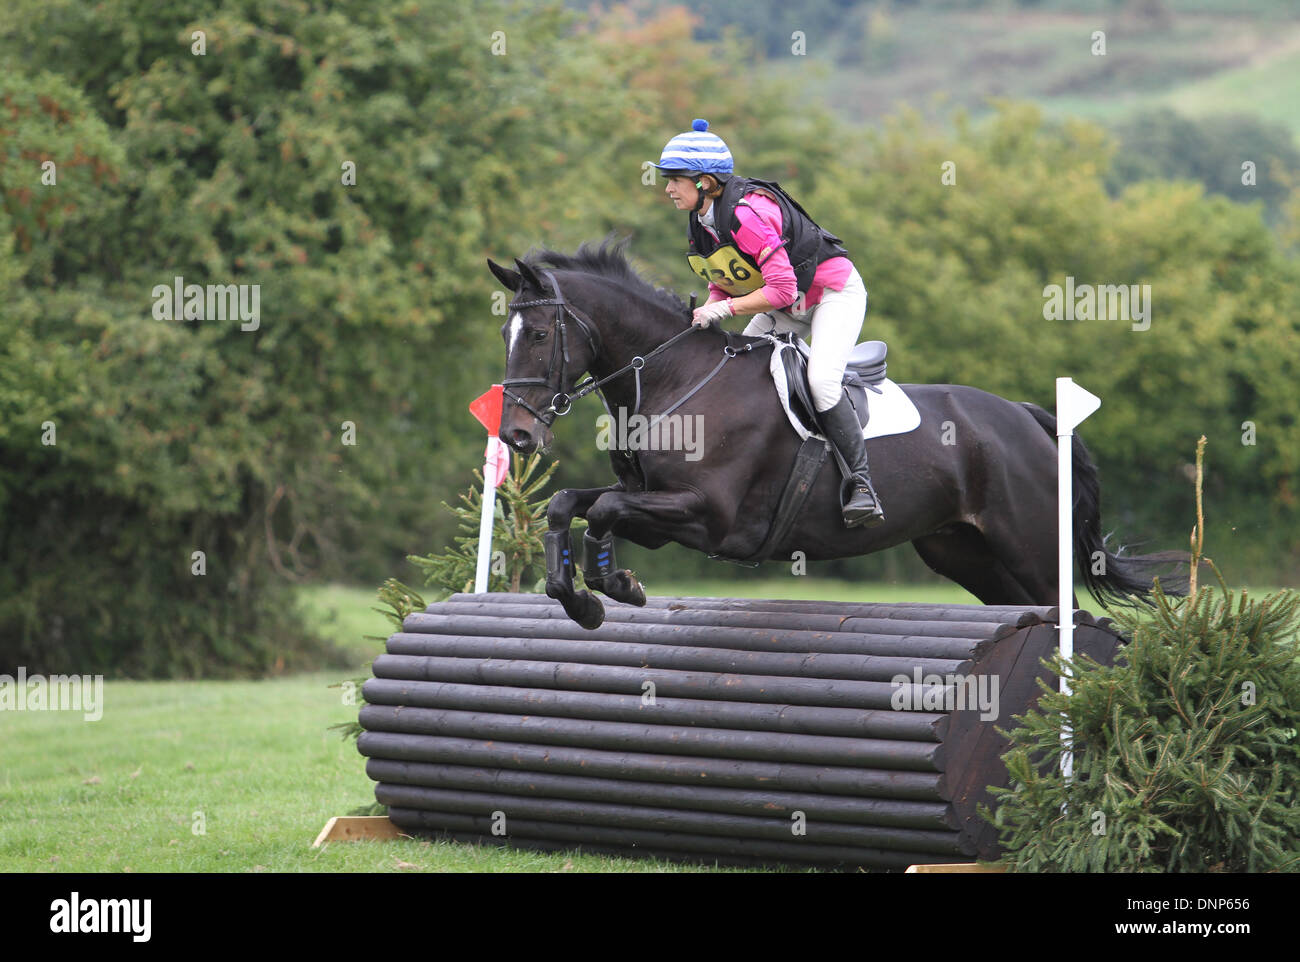 Horse and rider jumping a fence during the cross country phase of a one day event - Stock Image